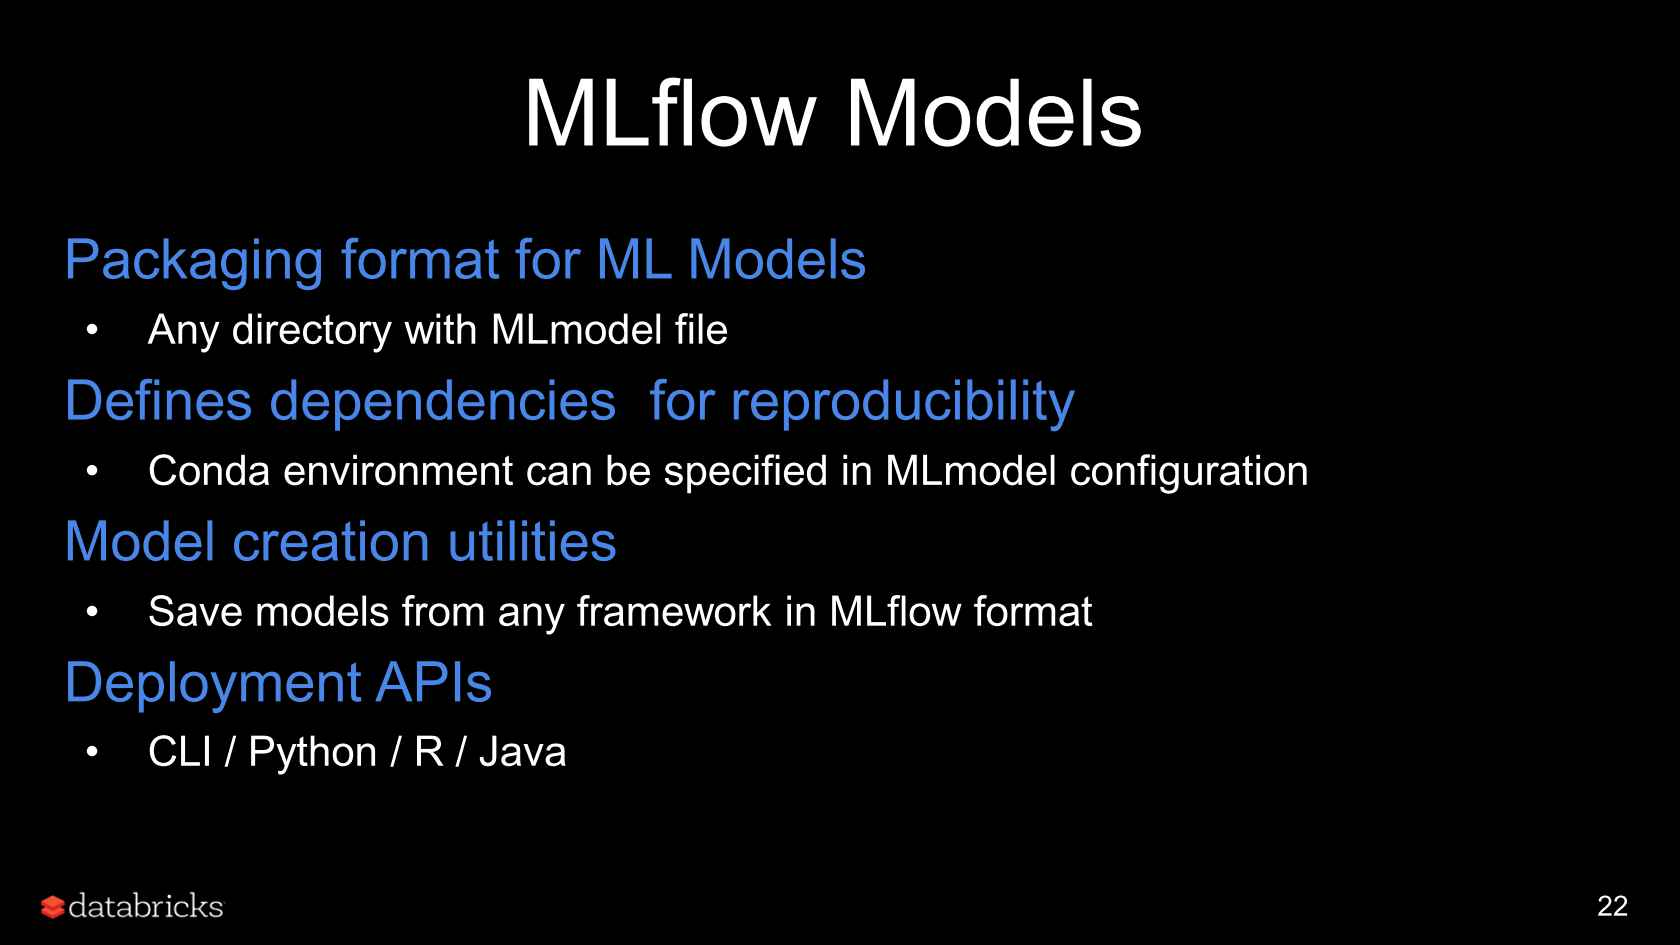 MLflow: An Open Platform to Simplify the Machine Learning